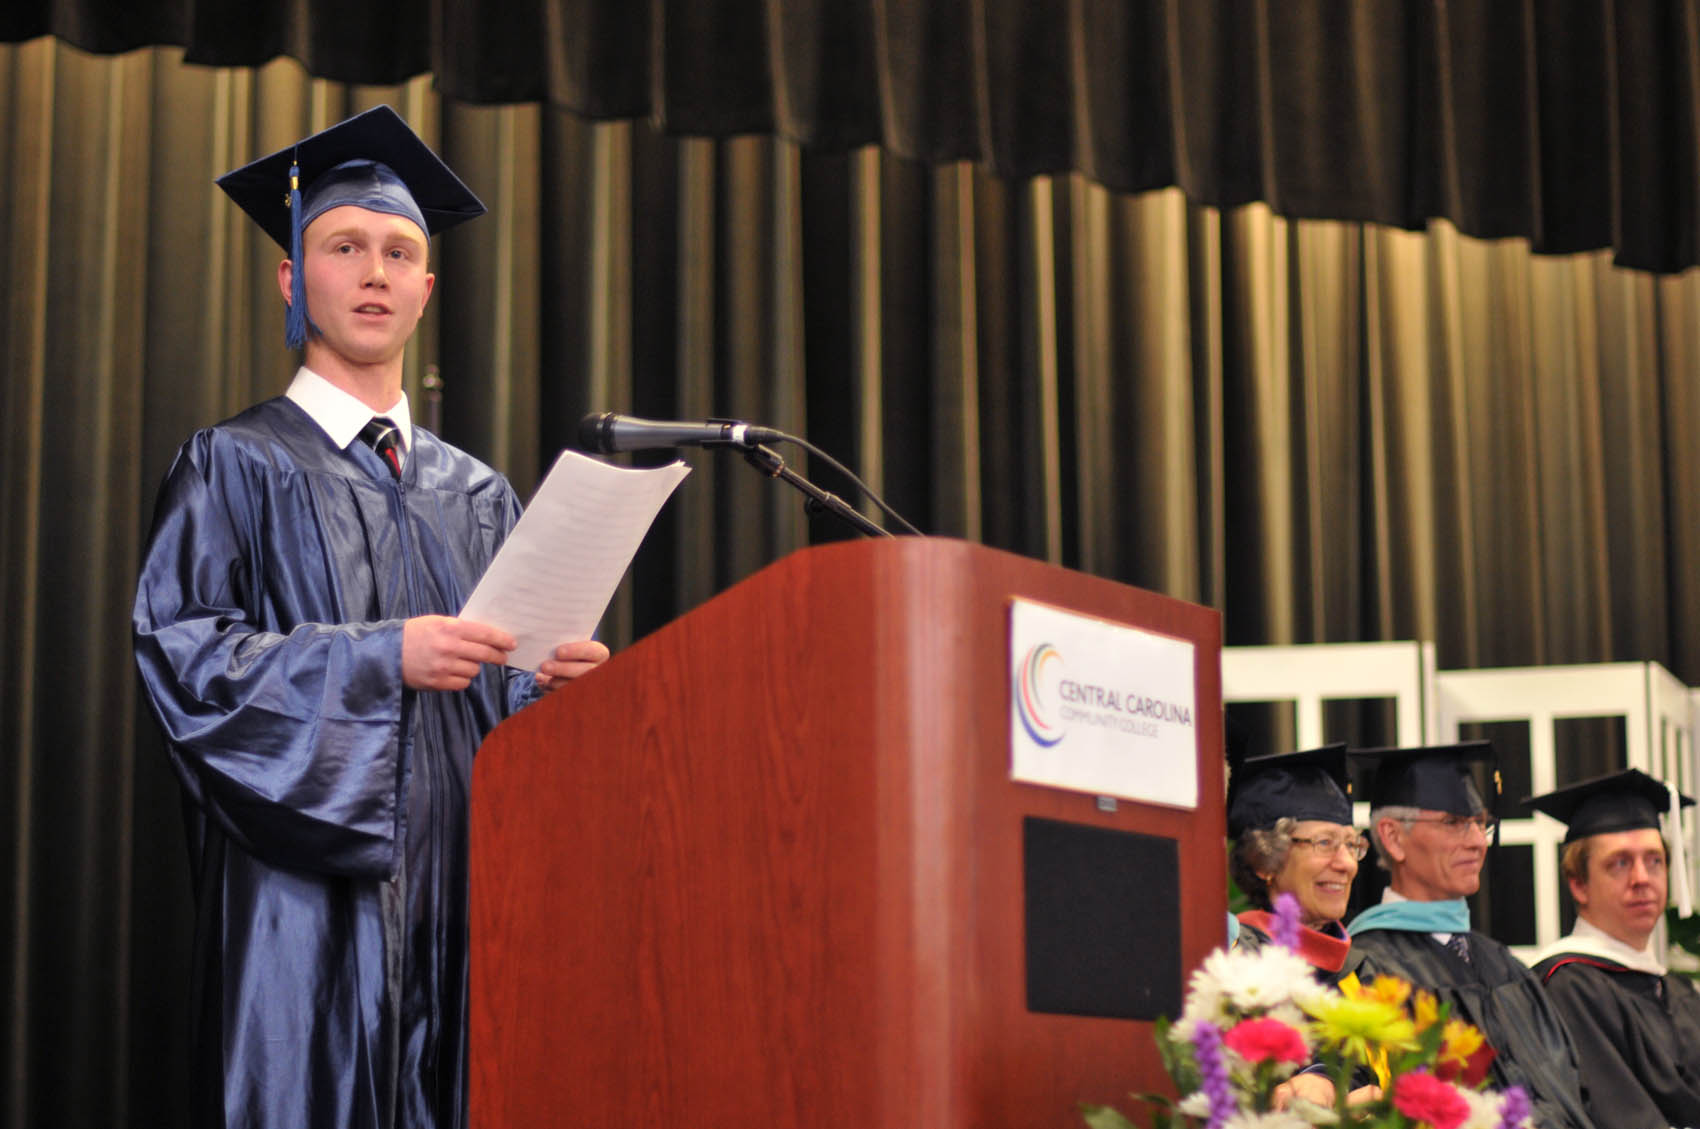 Click to enlarge,  James Dillon Locklear, a Lee County graduate, was one of the commencement student speakers at Central Carolina Community College's College and Career Readiness Commencement Exercises on Feb. 1.